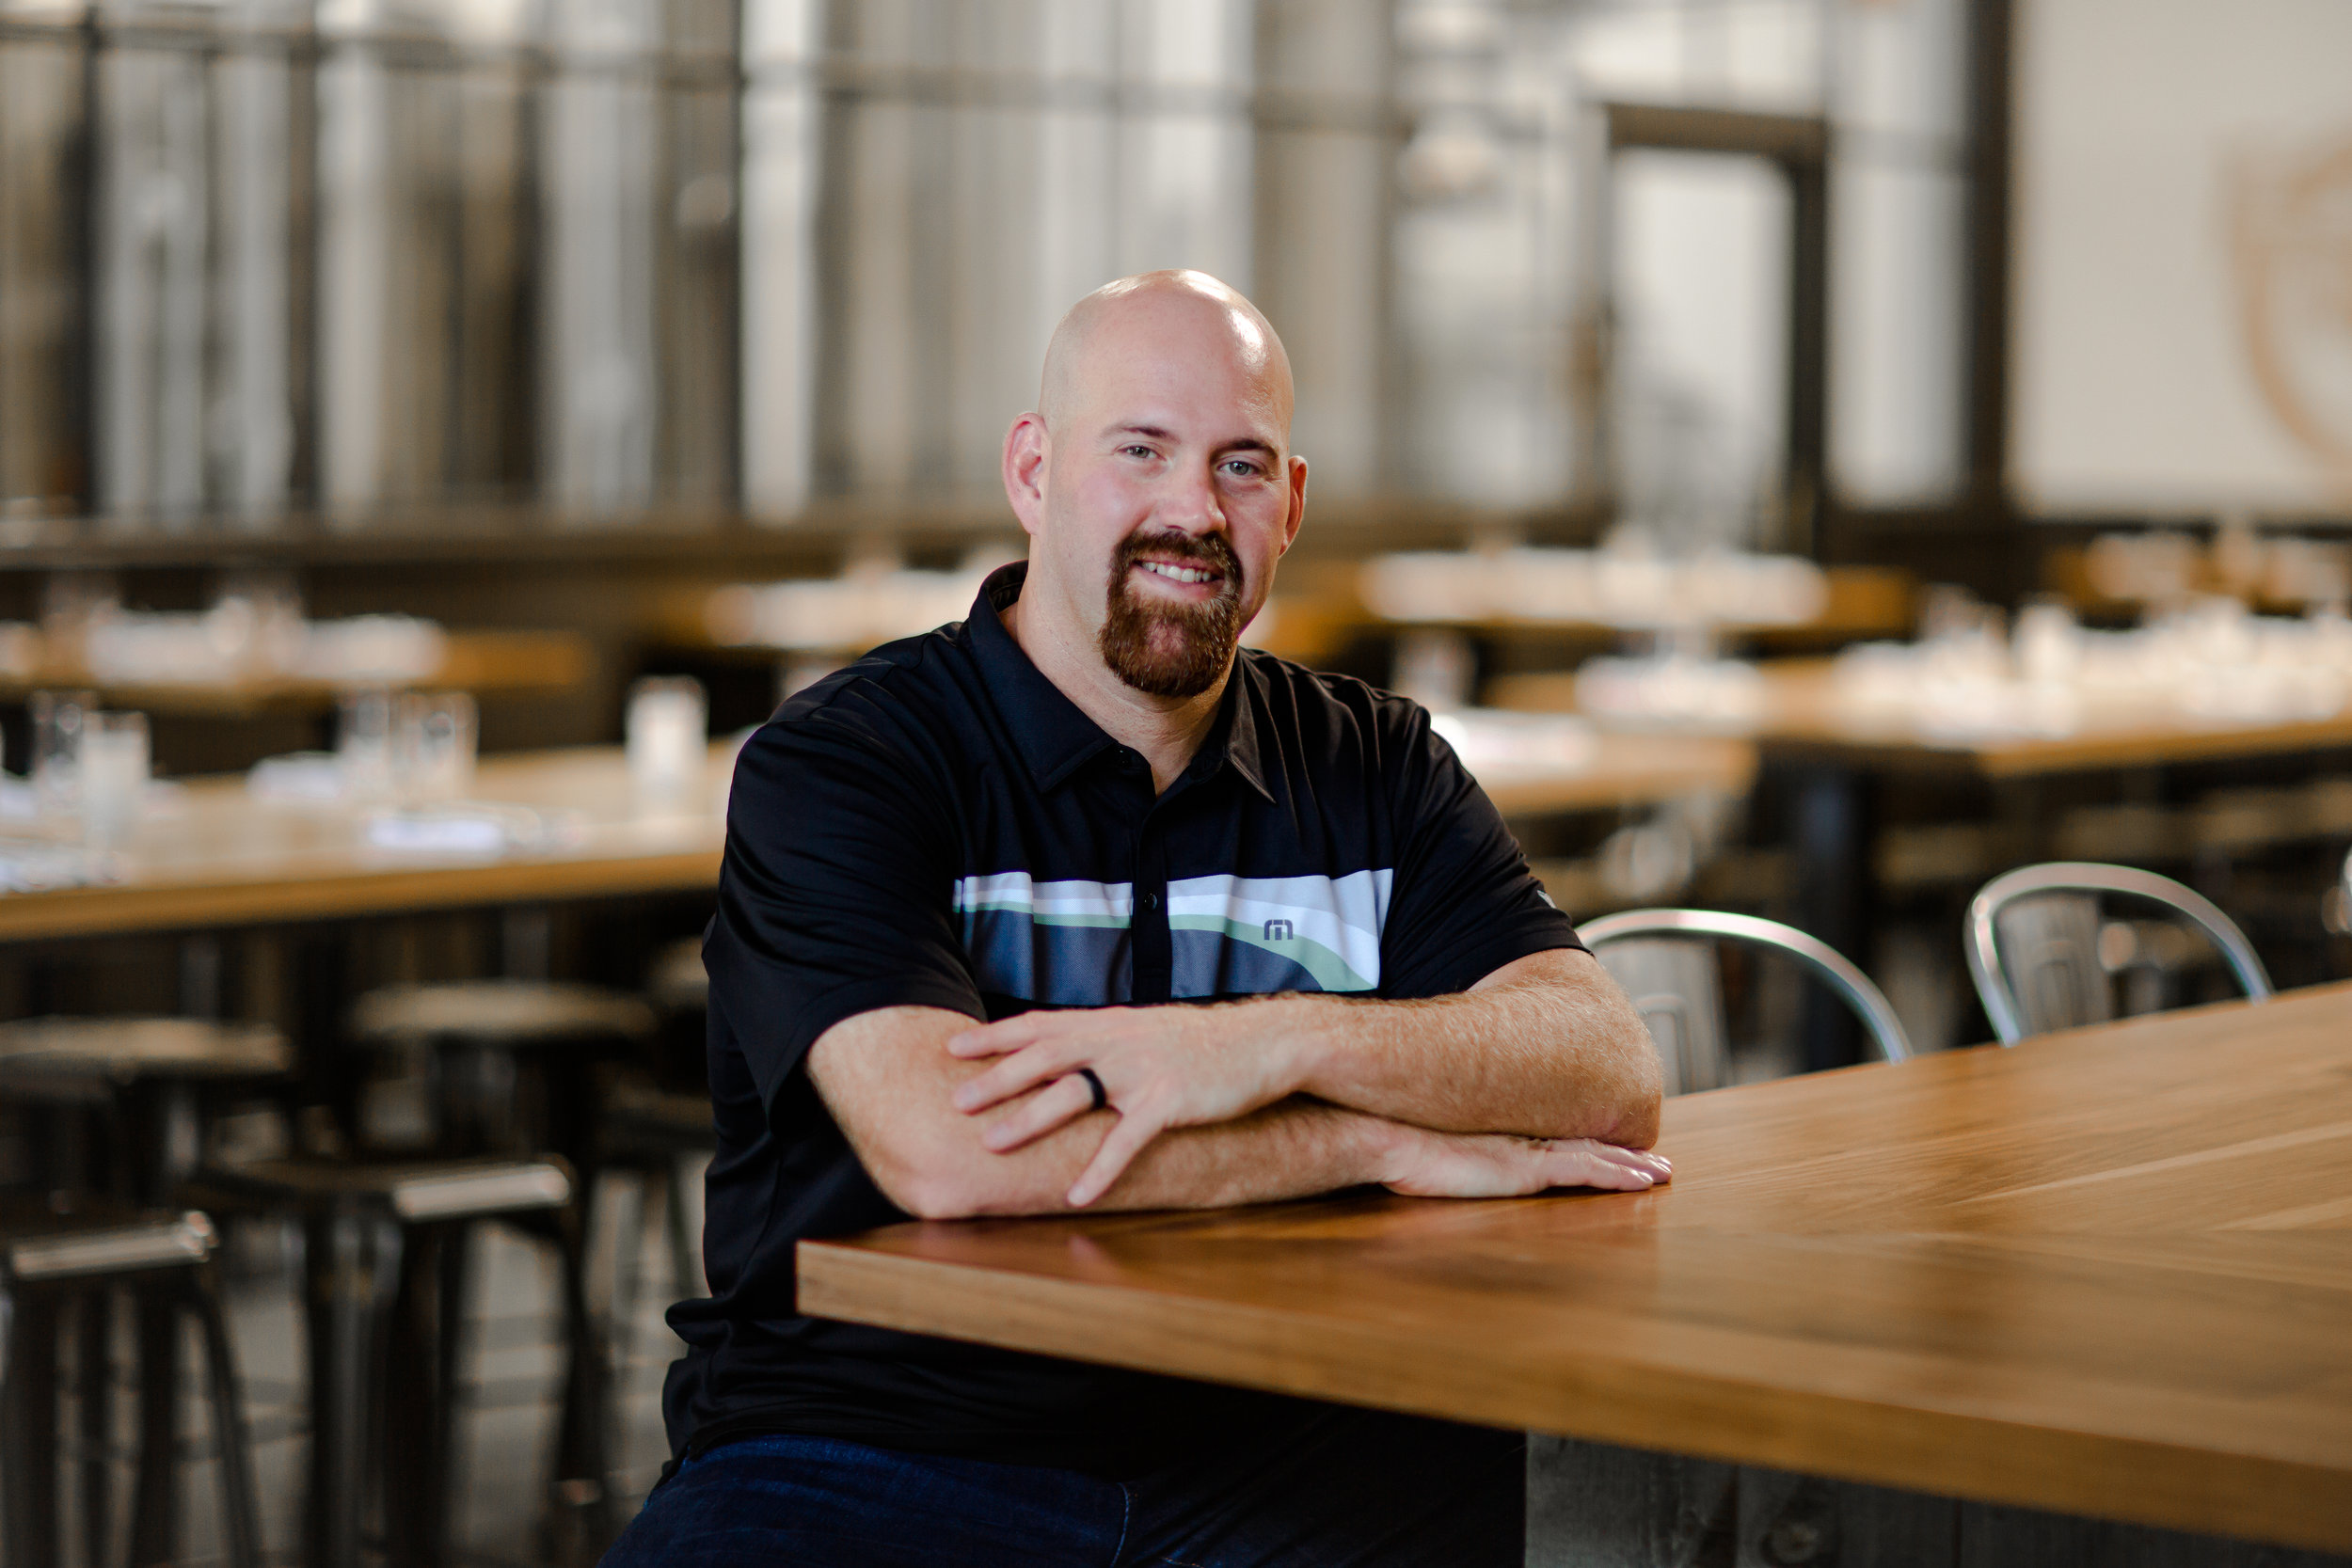 KEVIN YOUKILIS - OWNER   Former MLB player that hated the short hops in baseball but loves the hops of craft beer. Kevin's vision to open a brewery came from the perks of traveling across the country and exploring breweries. If you ever saw him play, you can understand why he needed a beer after a game to taper the adrenaline.  Once he was washed up, he wanted to find a business venture that consumes his passion to work and to be on a team. When he is not hanging out at Loma, he is busy chasing after his 3 kids. He currently is batting a  1.000 in home brewing! (1-1)